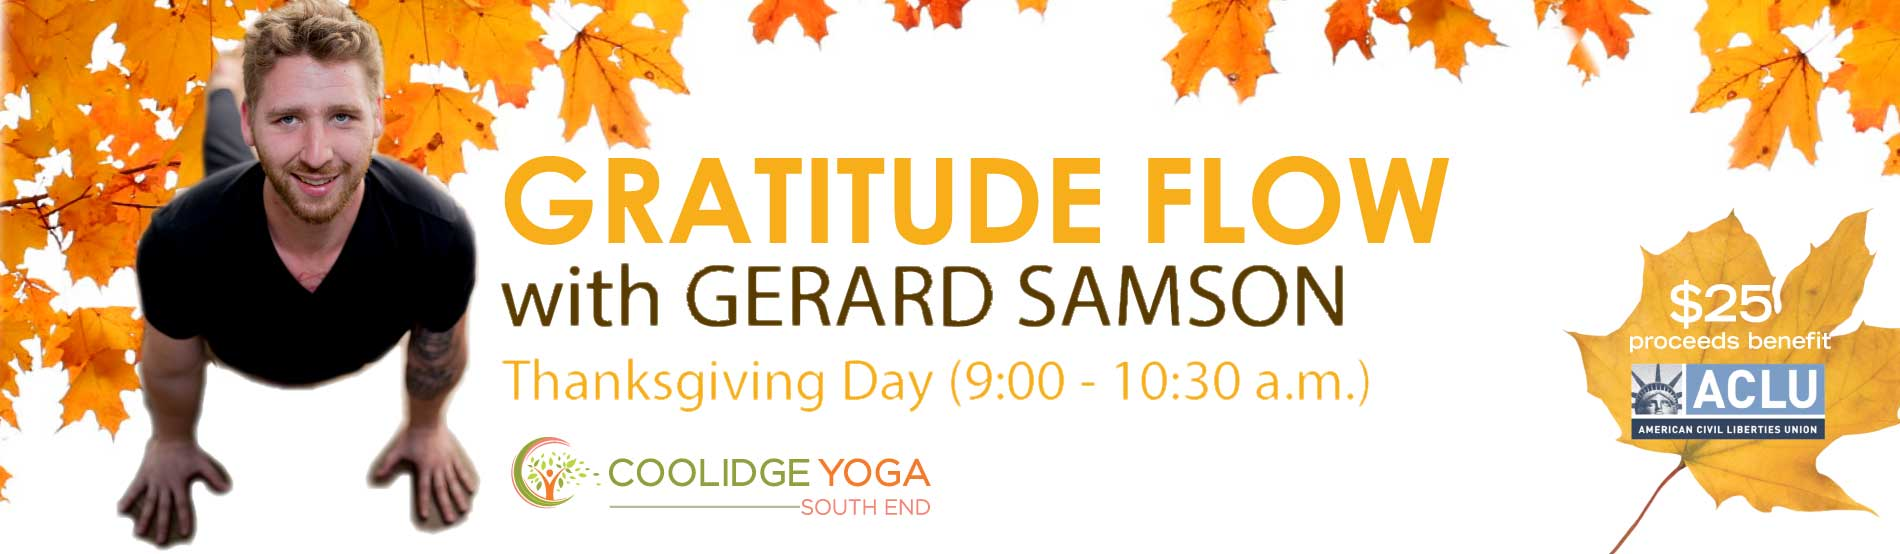 Gratitude Flow with Gerard in South End on Thanksgiving